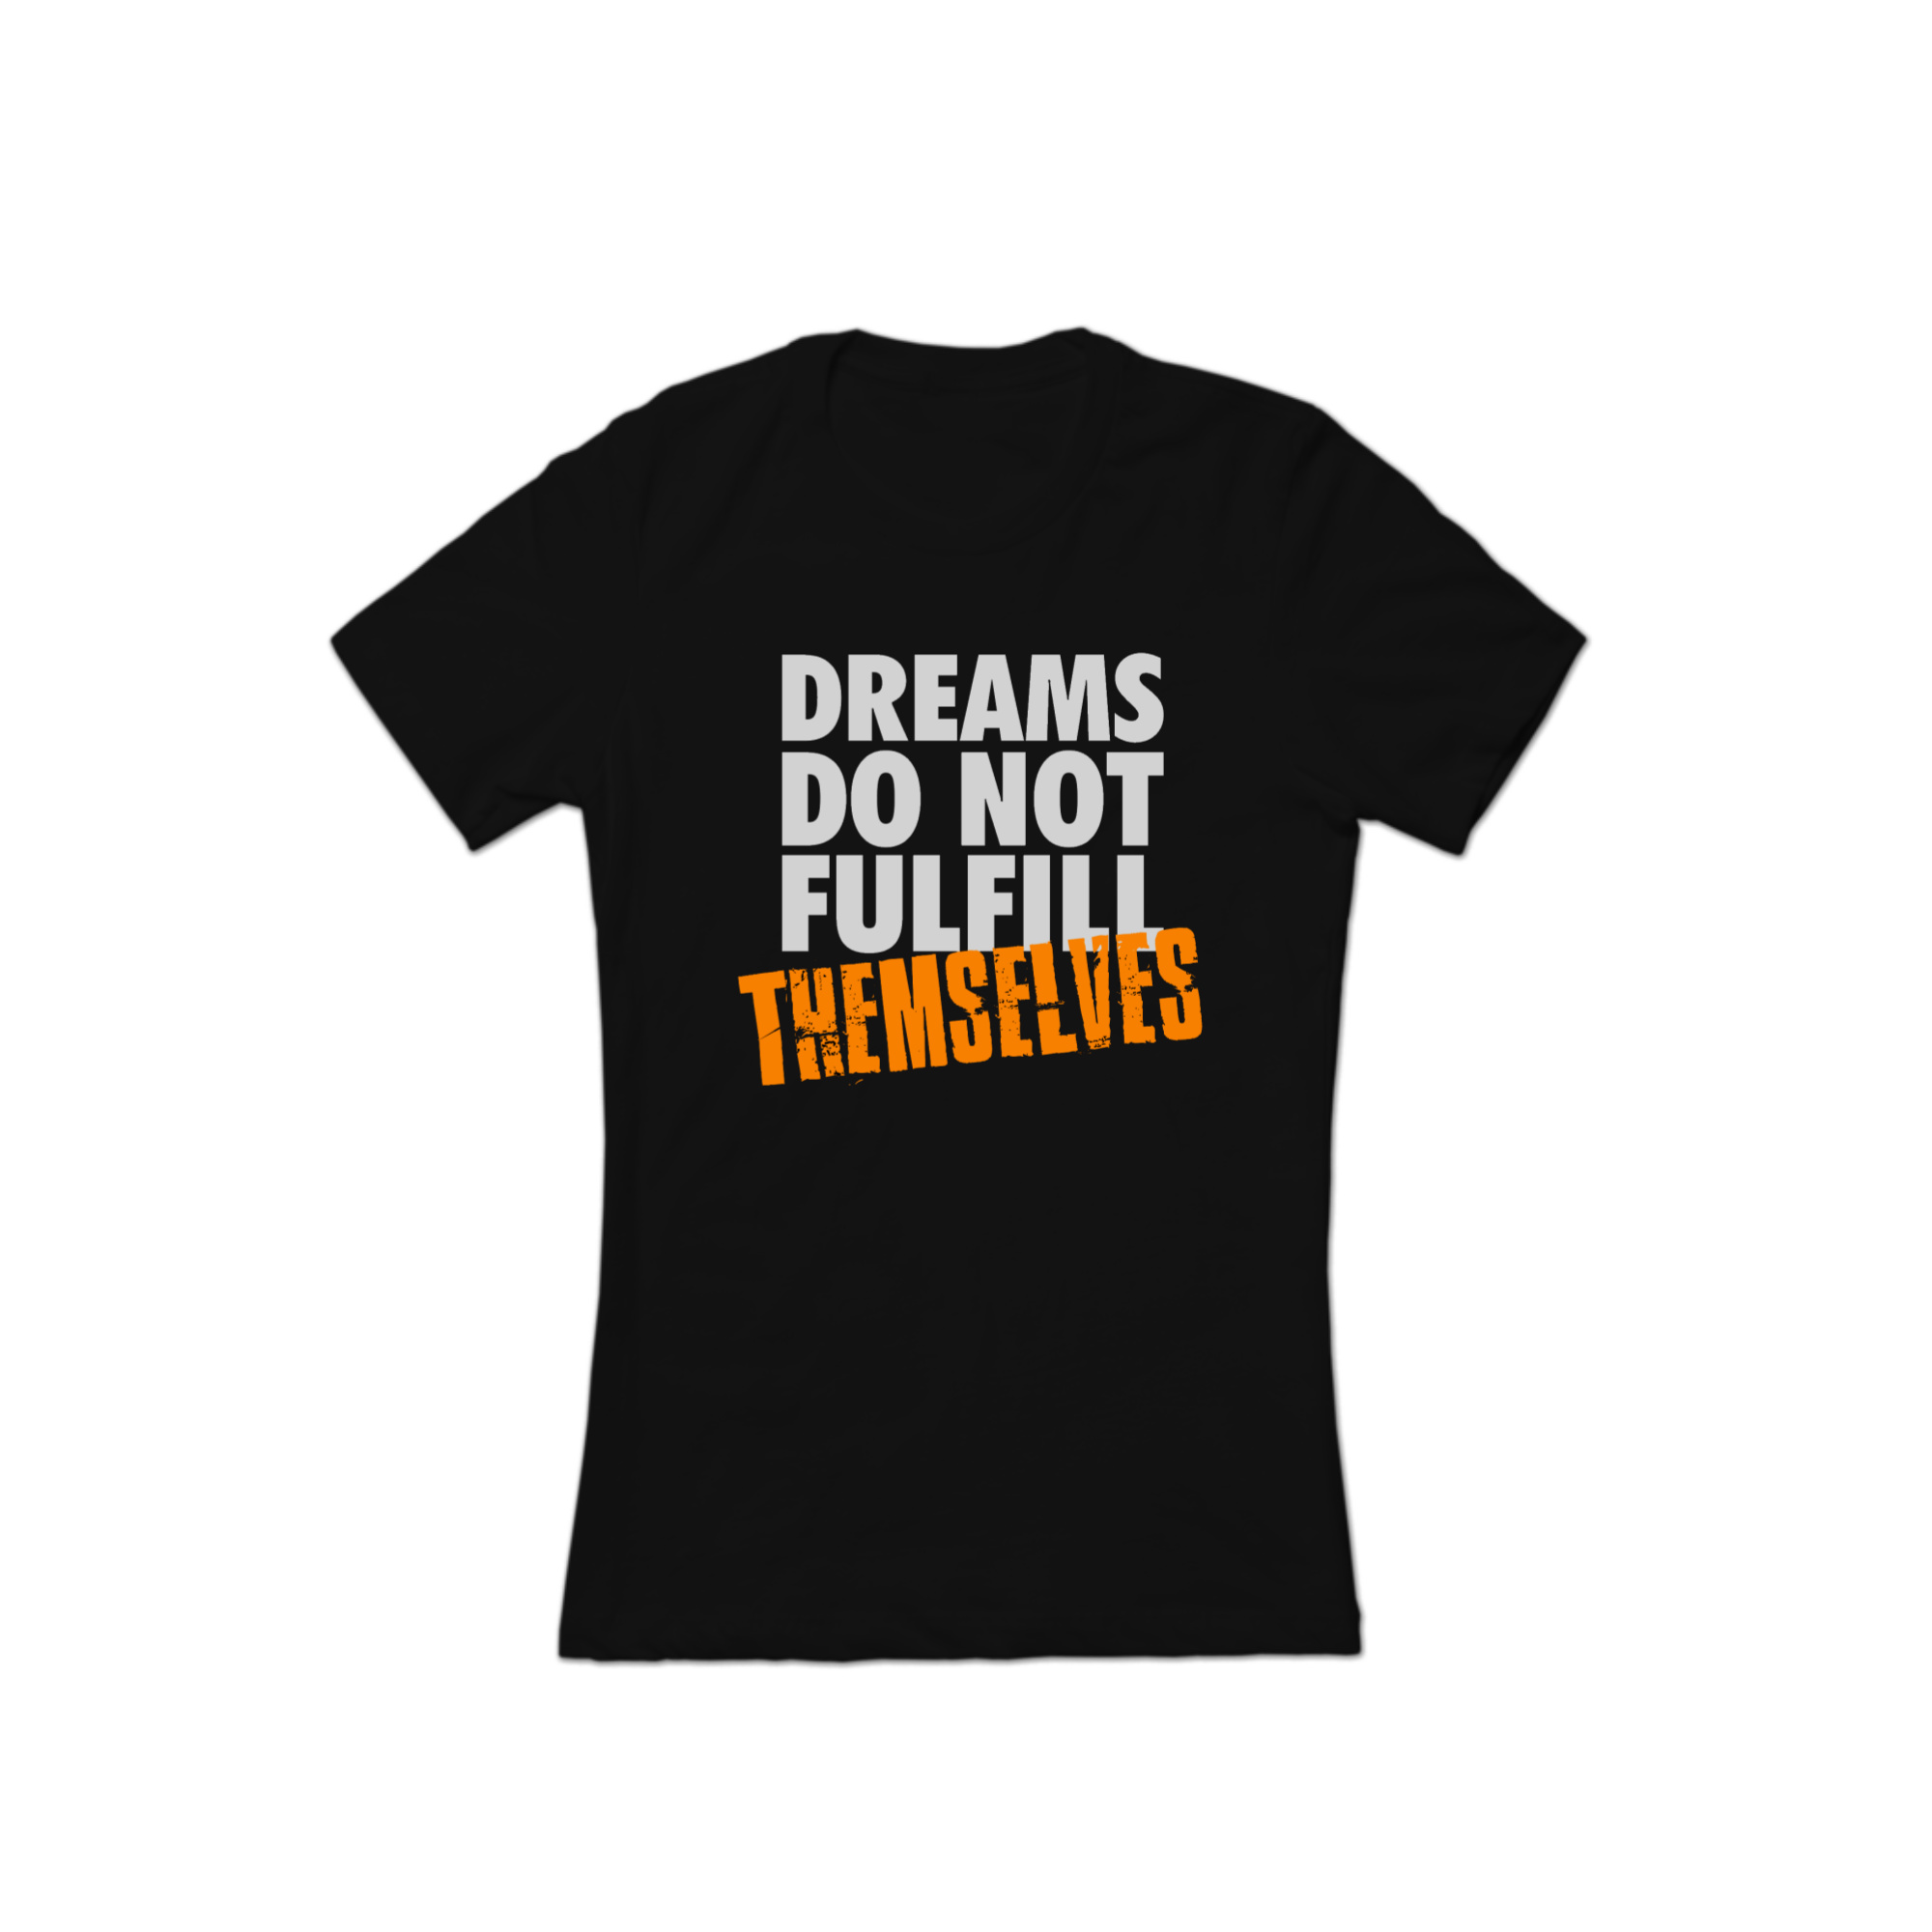 Dreams Do Not Fulfill Themselves Tee